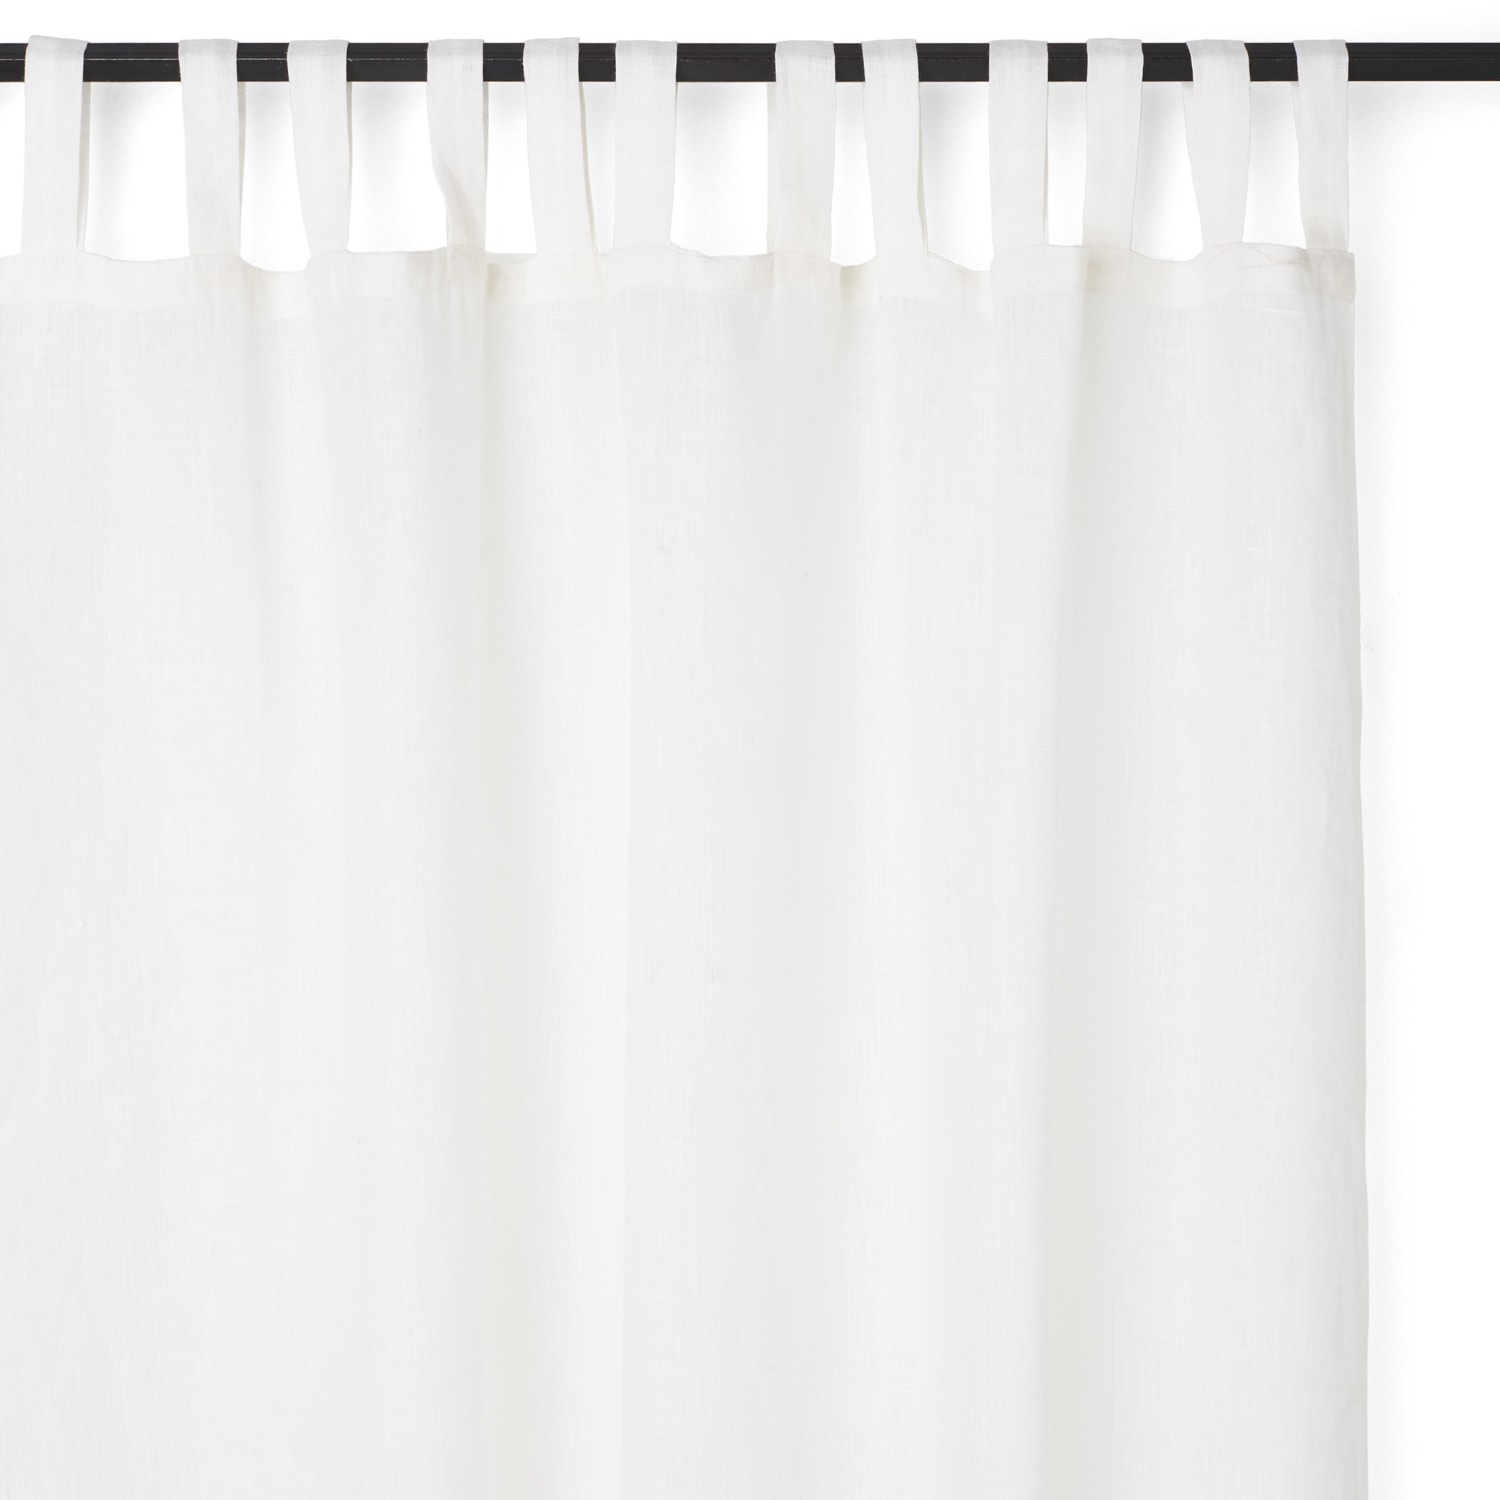 Curtain Panels Window Treatments At Abc Home Within Plain Linen Curtains (View 3 of 15)